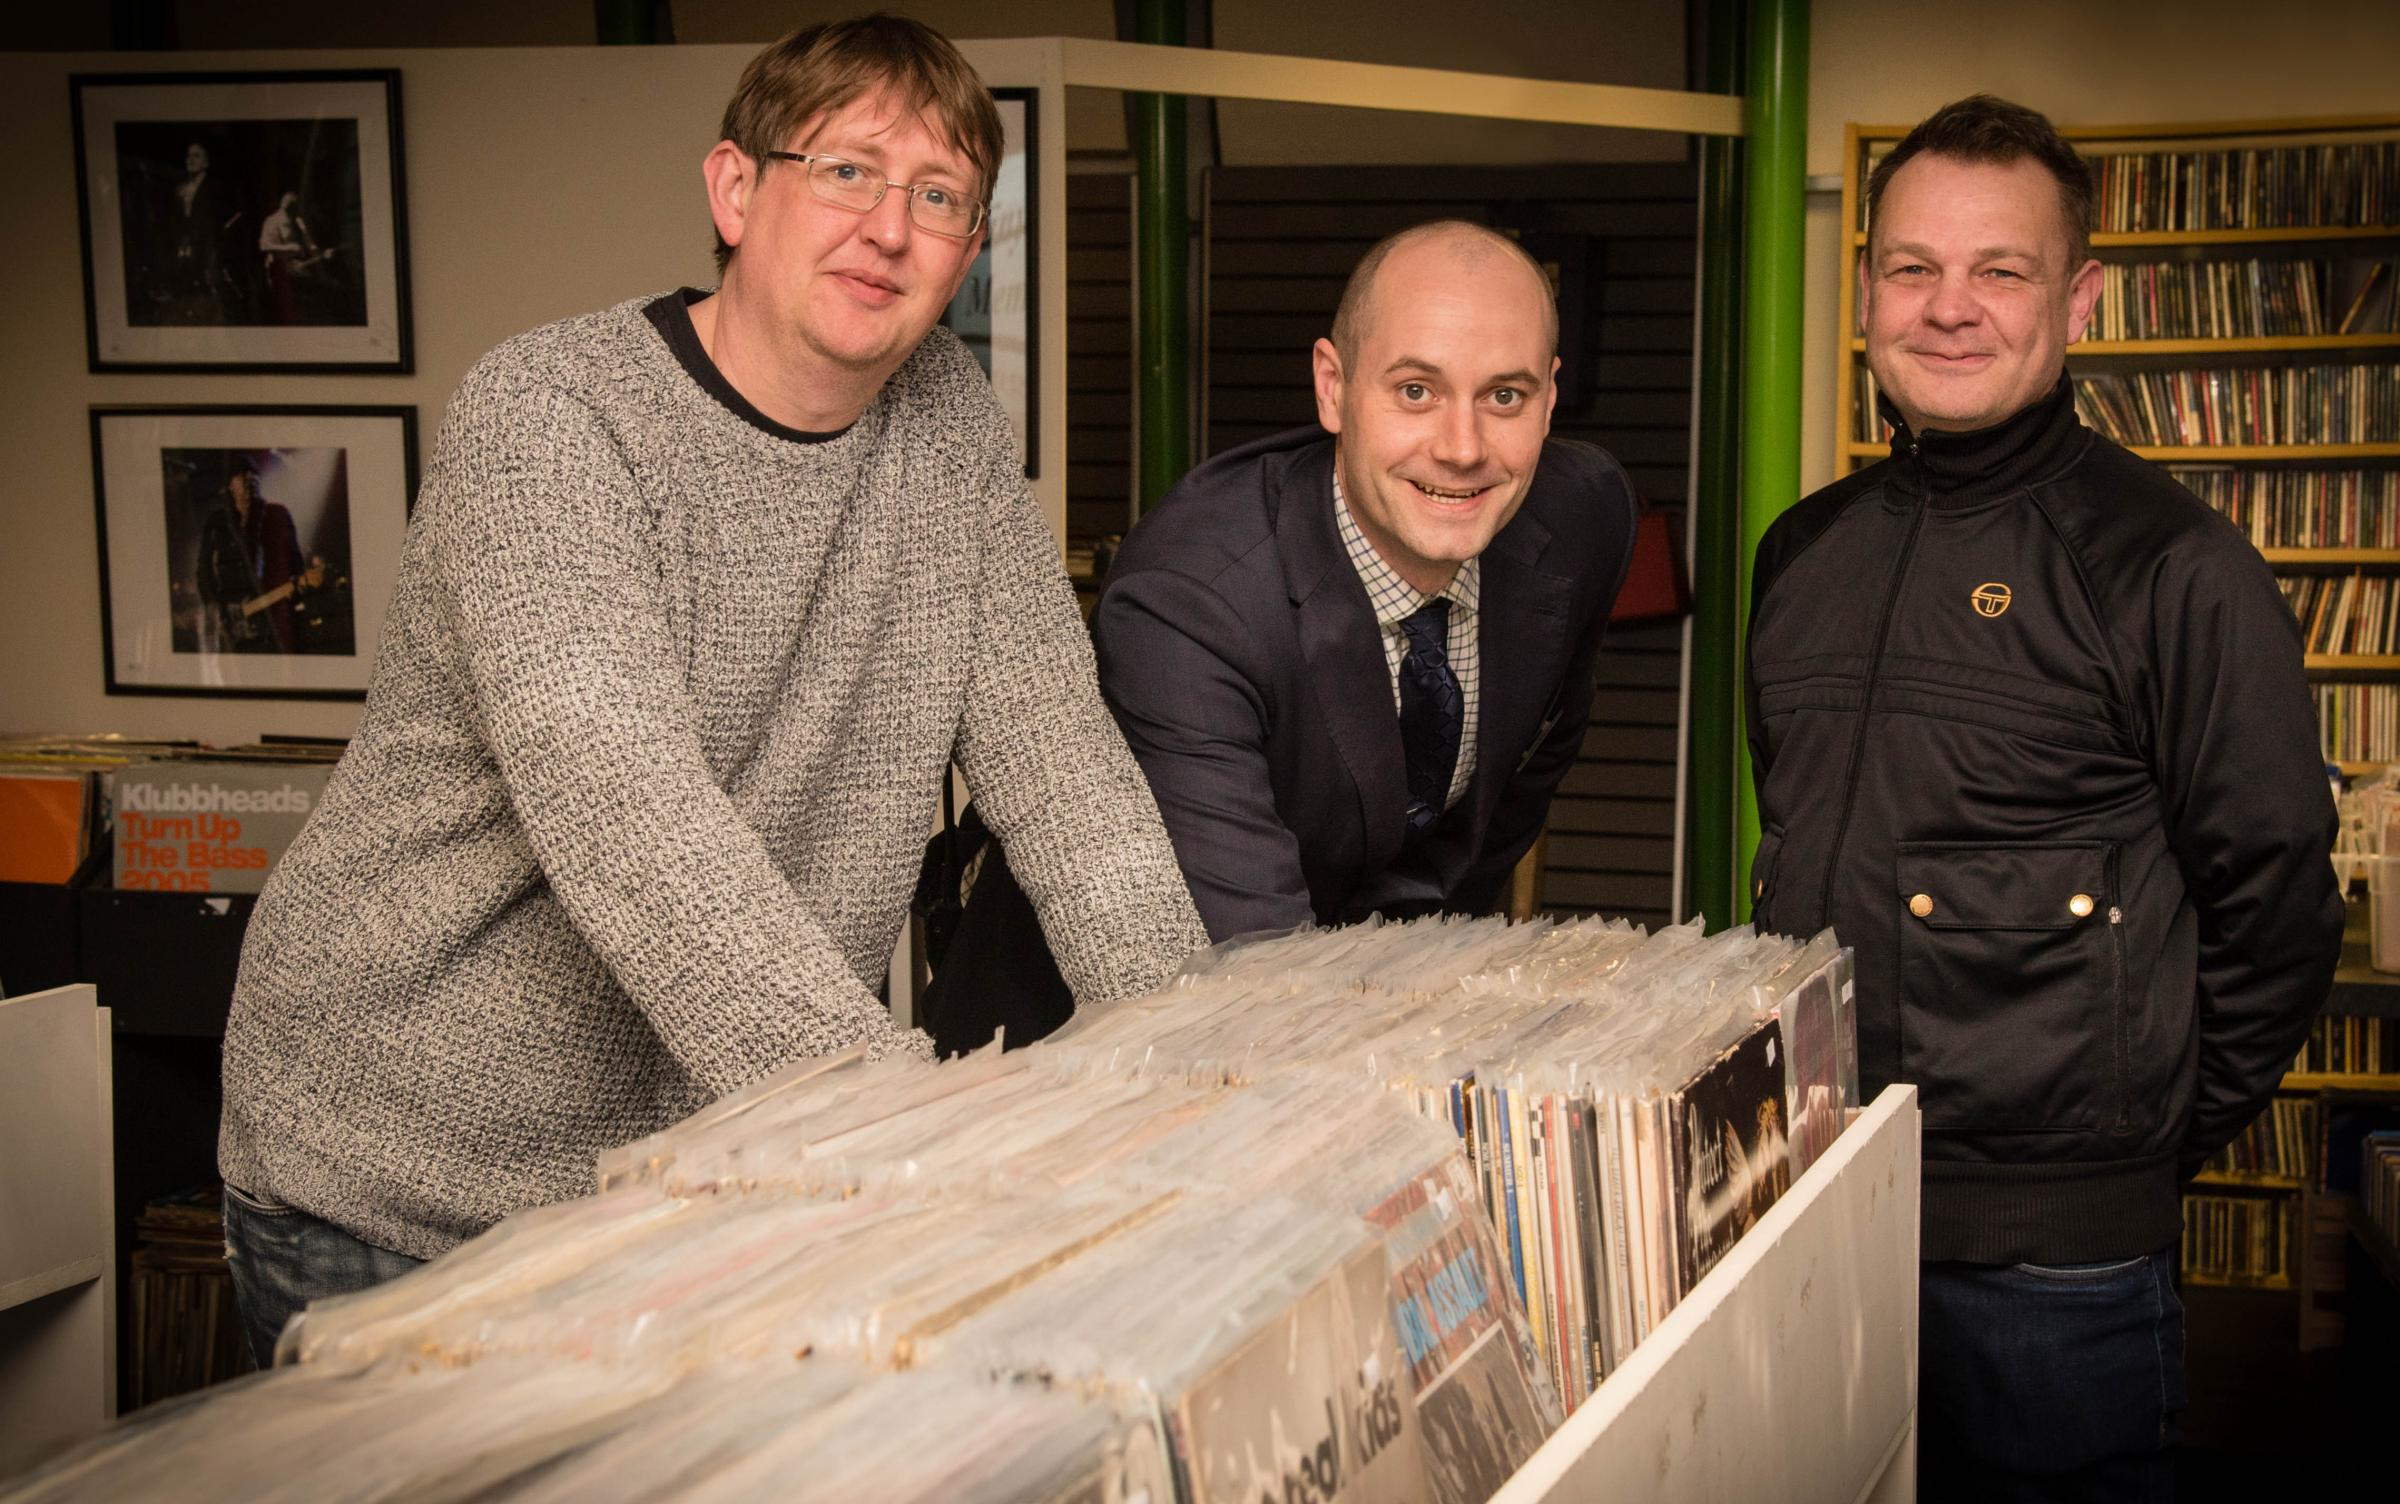 Nigel Young, left and Rick Jones with Stretford Mall Operations Manager Craig Topping, centre at Reel Around the Fountain Records